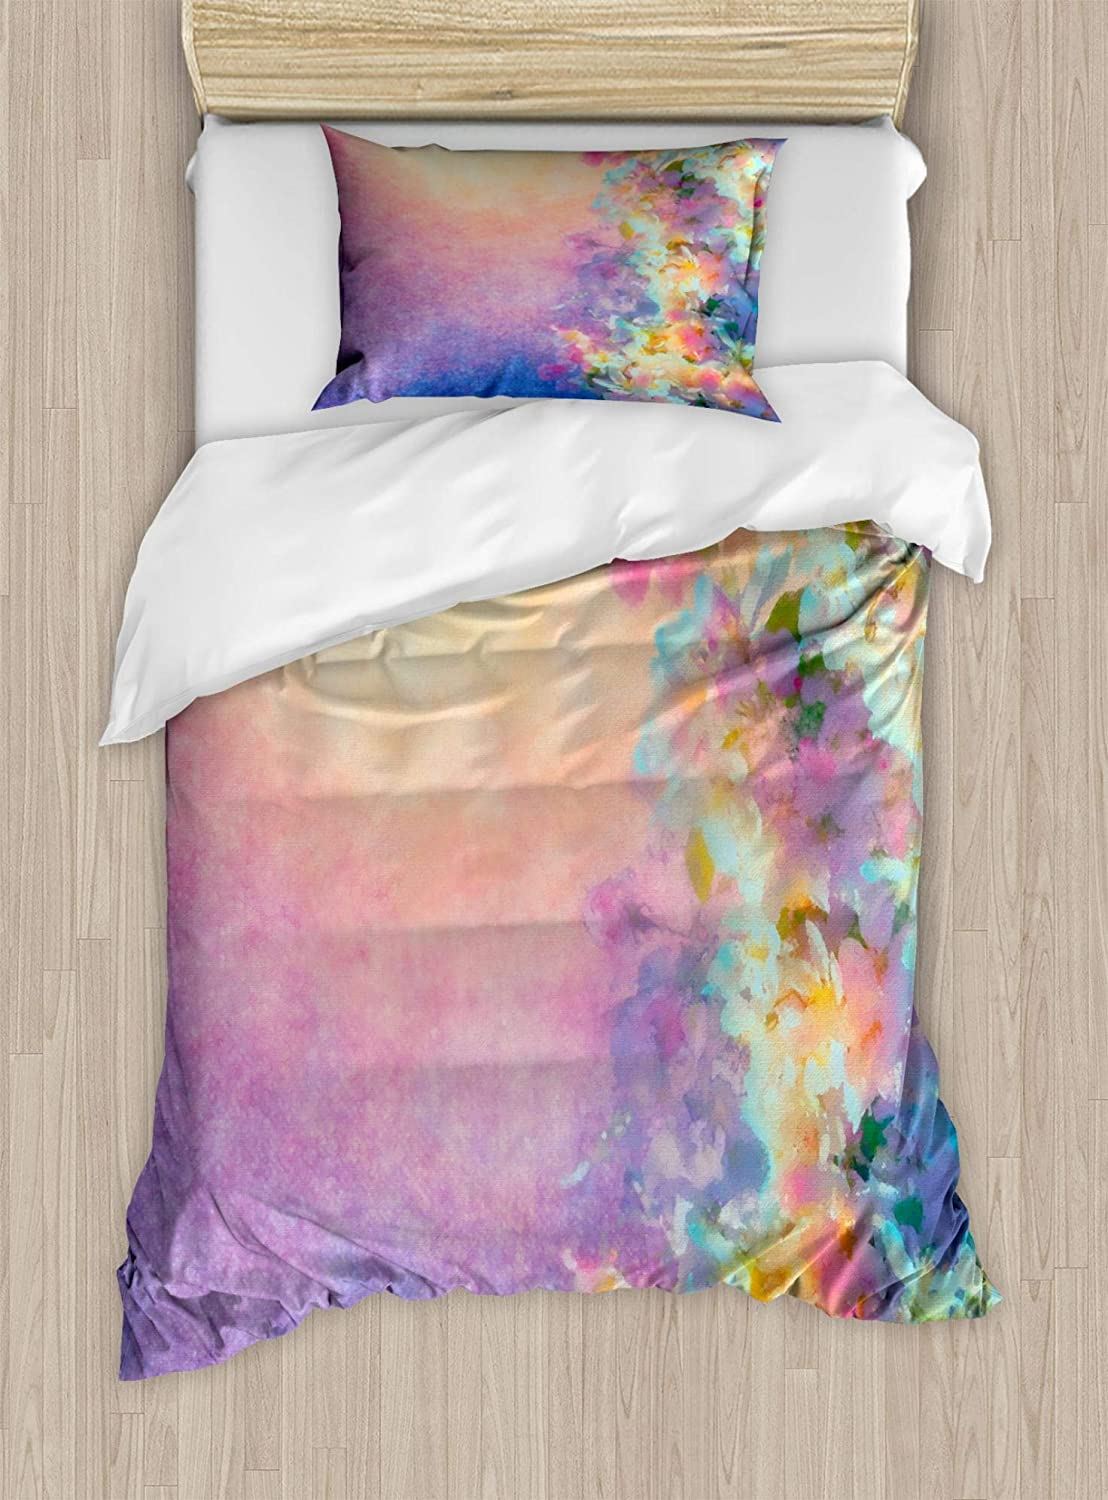 Ambesonne Purple Duvet Cover Set, Watercolor Style Effect Spring Cherry Blossom Japanese Nature Print, Decorative 2 Piece Bedding Set with 1 Pillow Sham, Twin Size, Marigold Purple